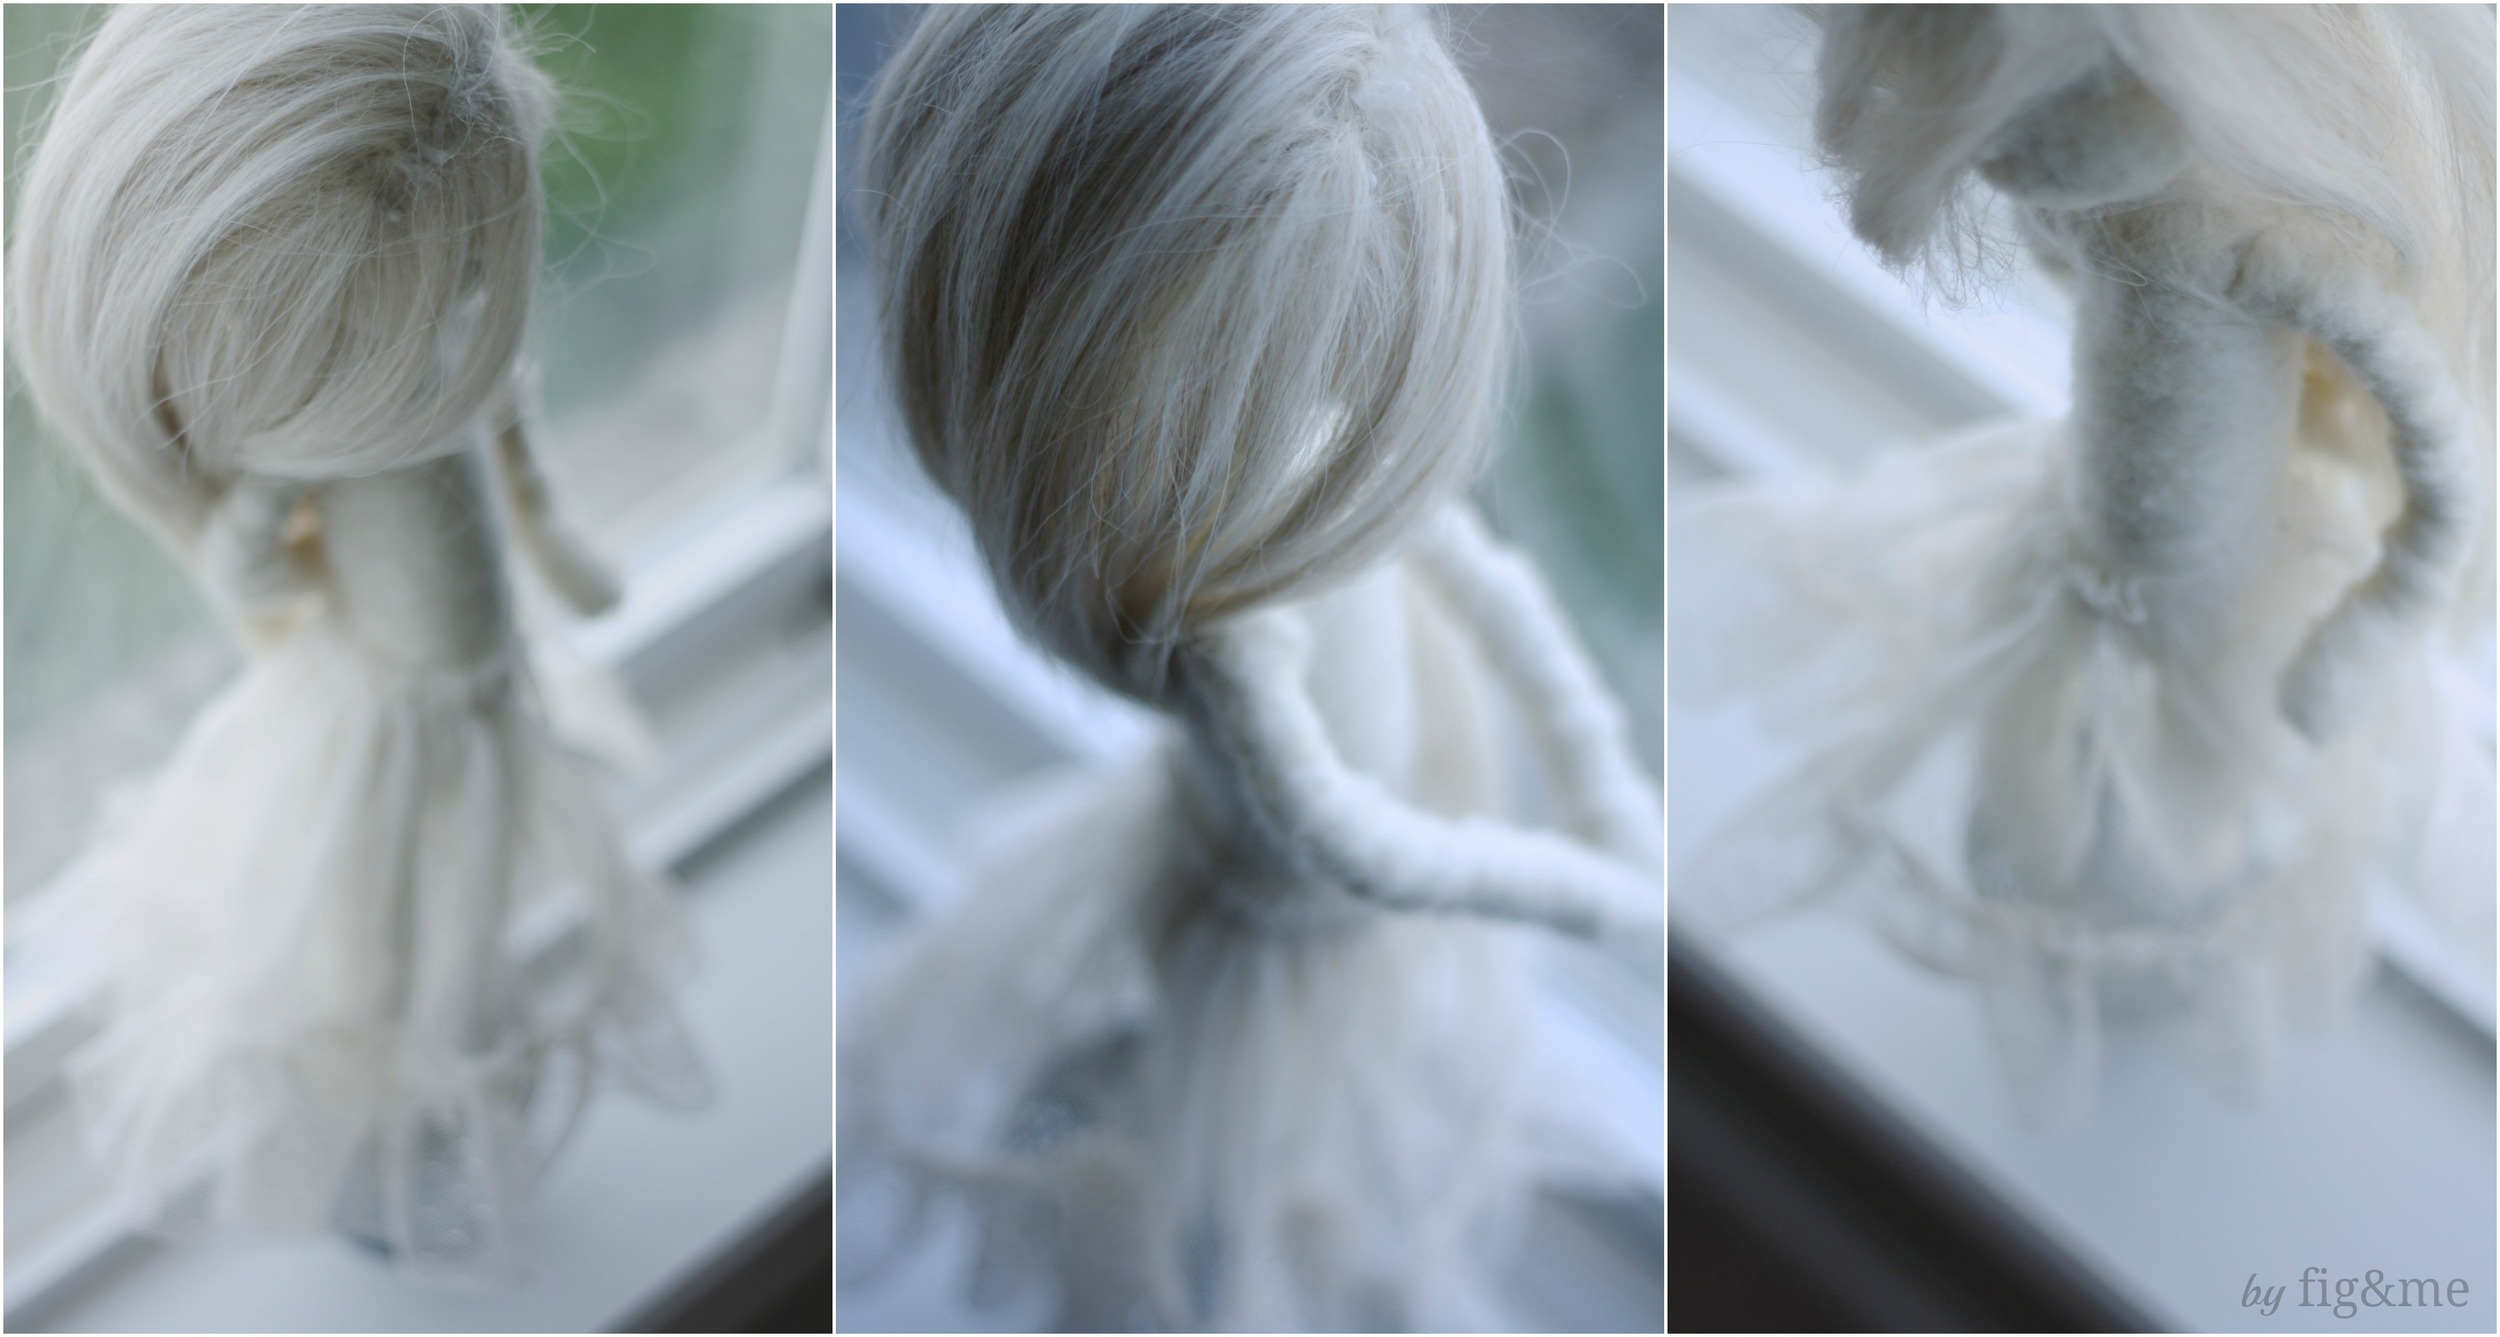 Wool sculpture art doll, by Fig and me.